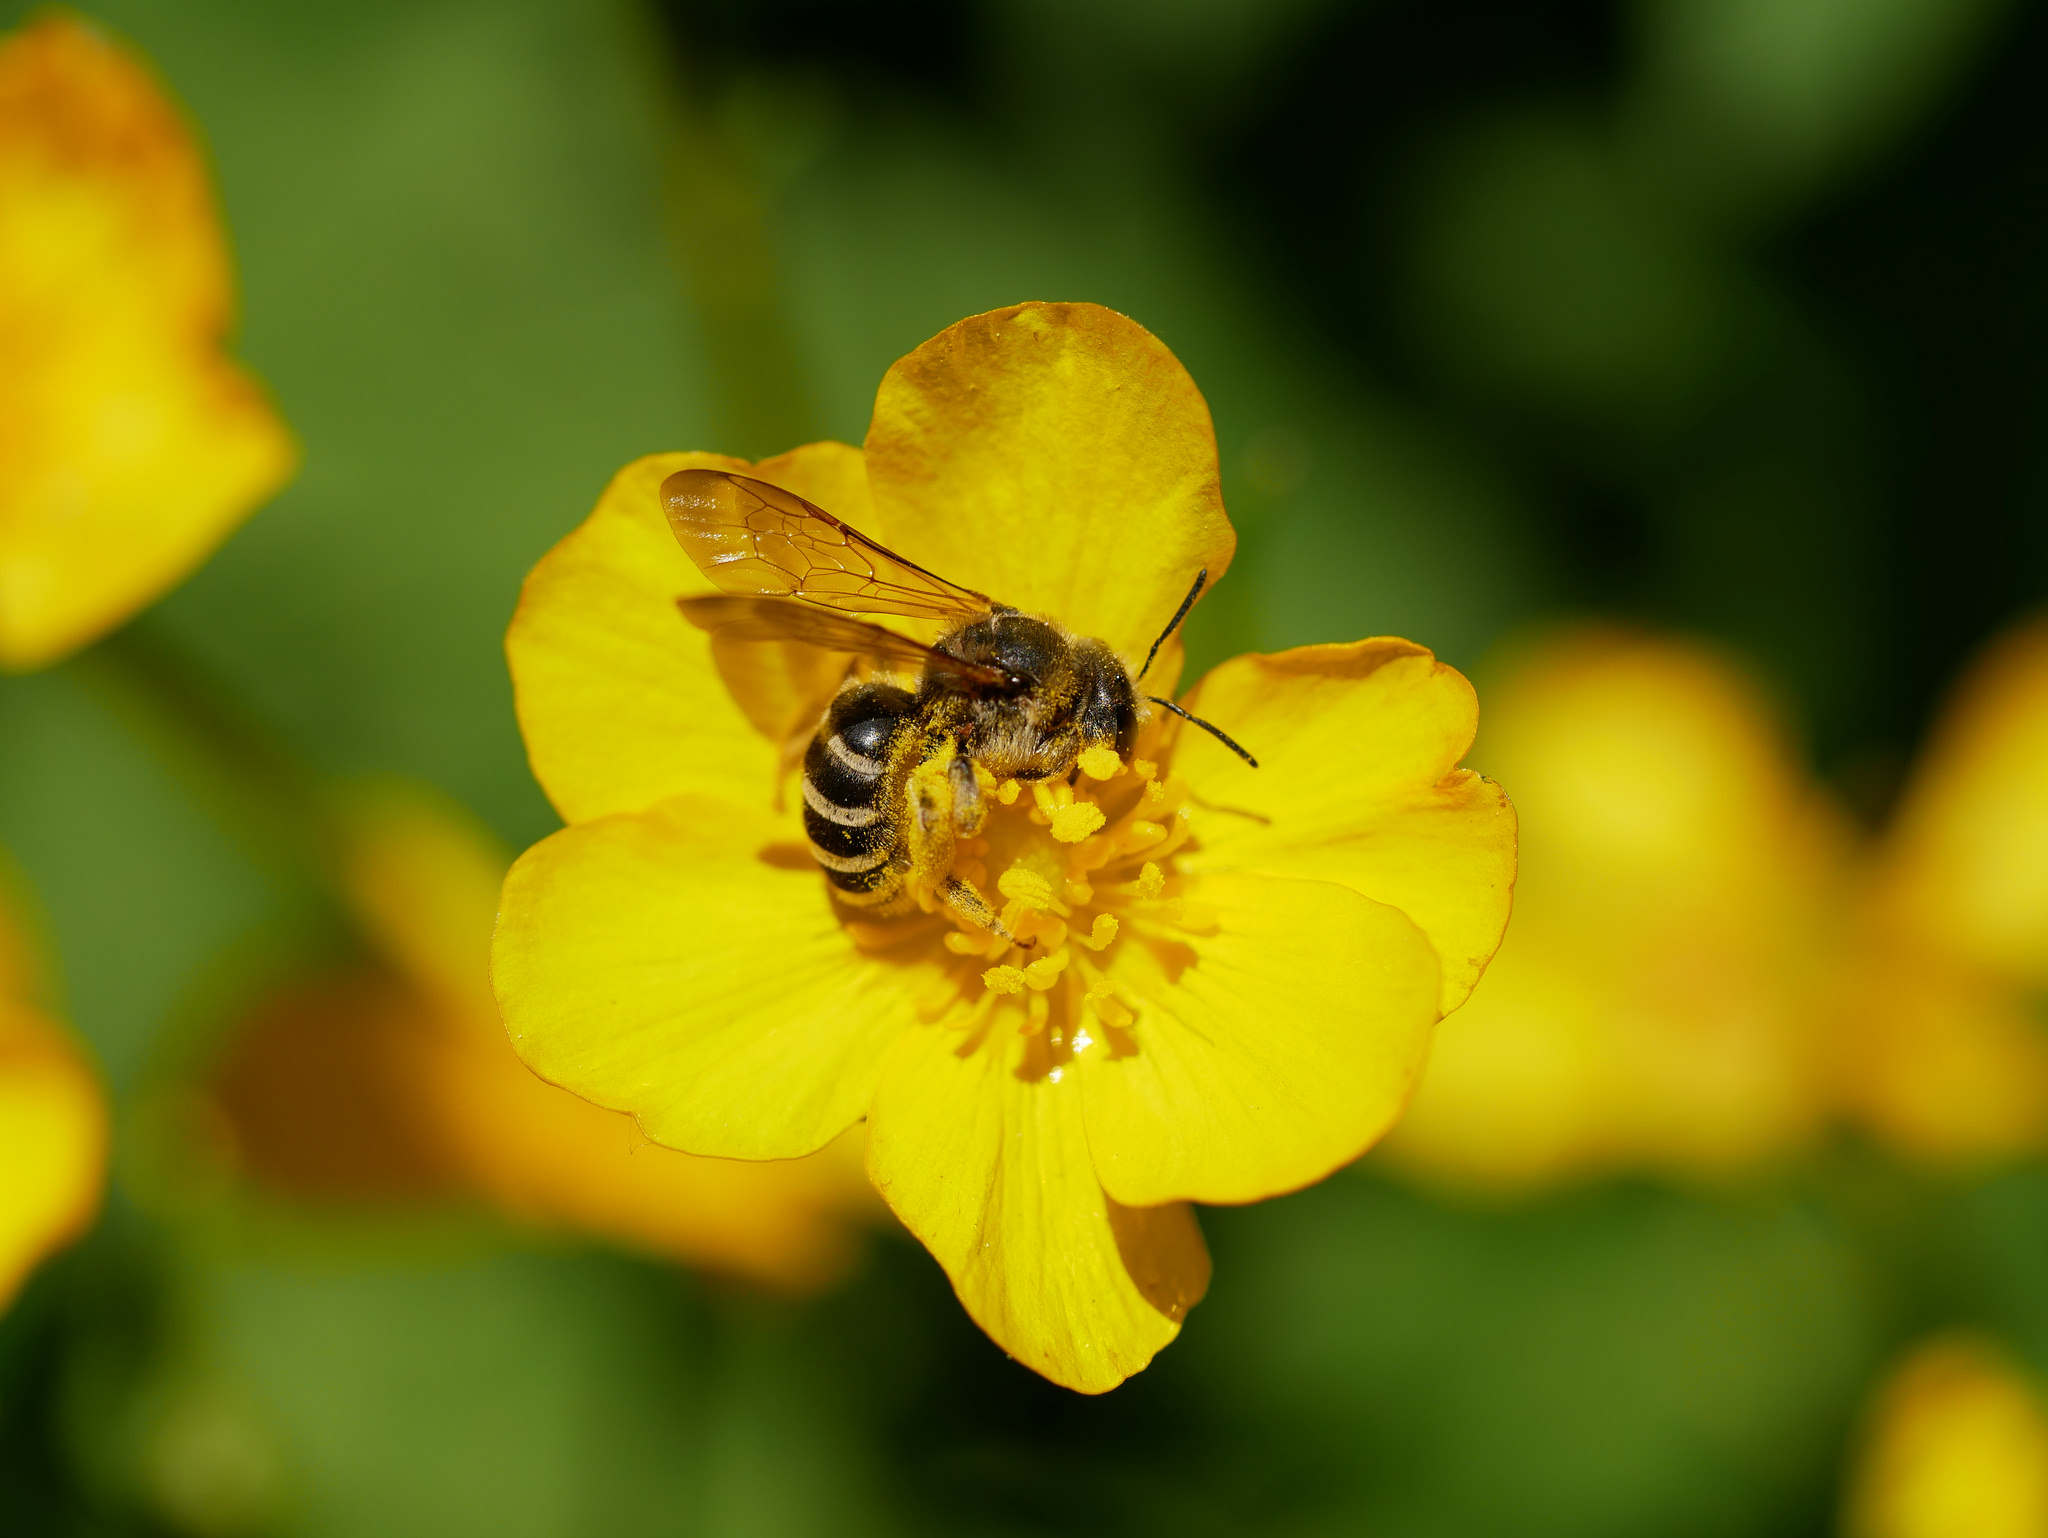 Give bees a chance by knowing their needs